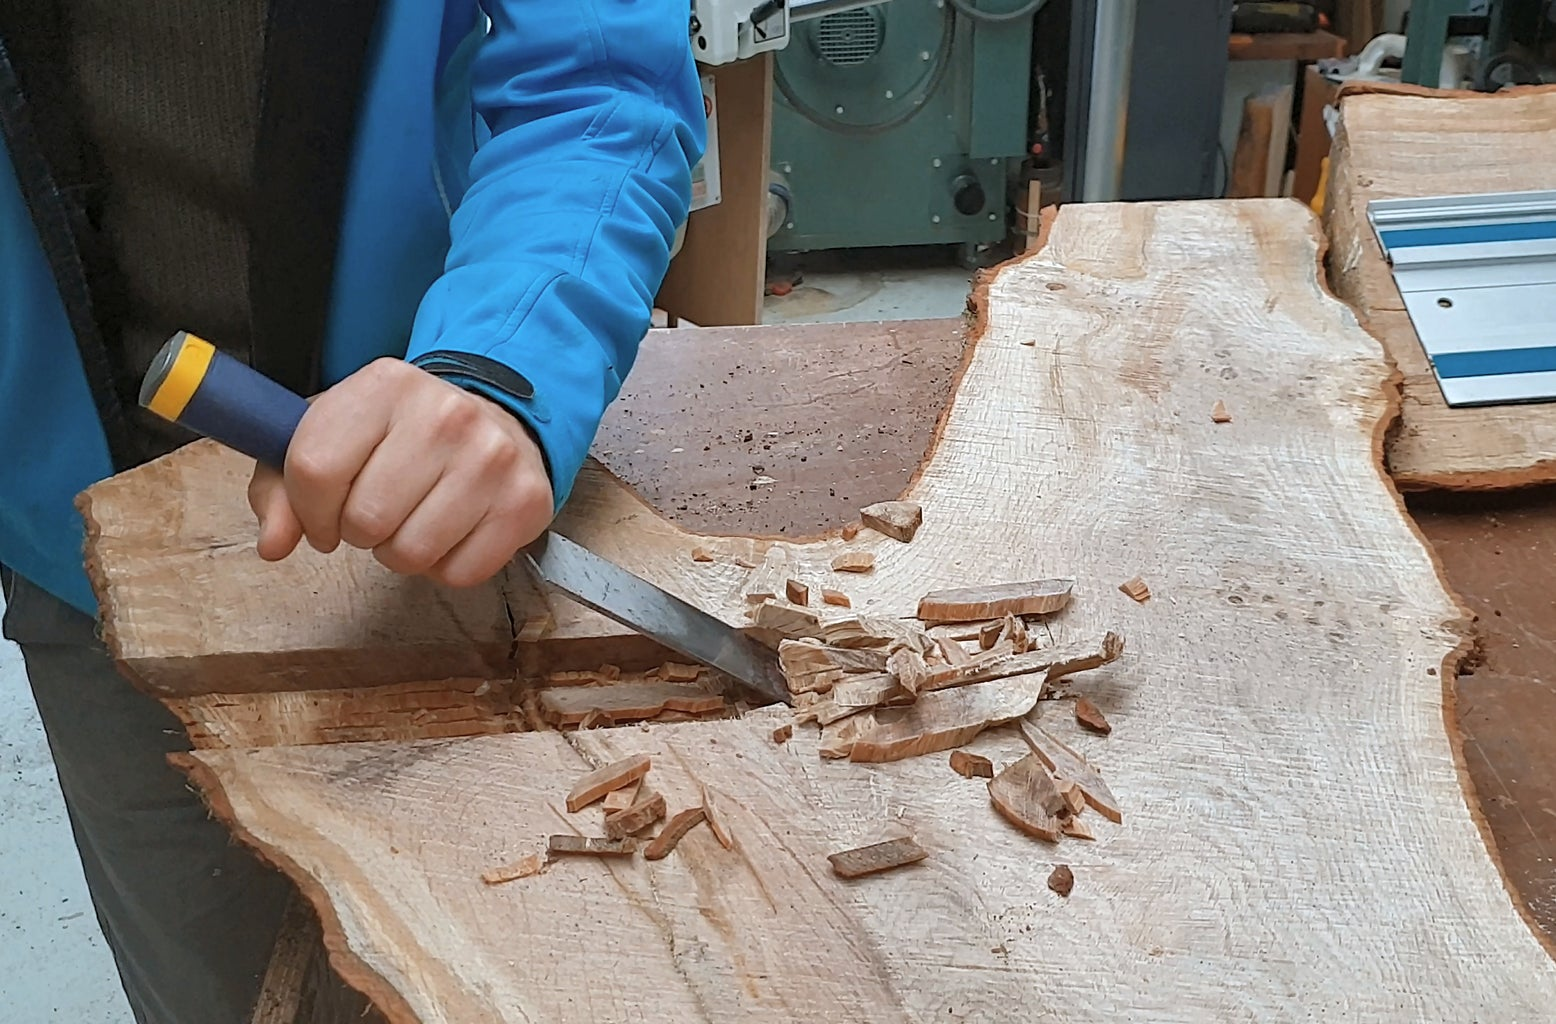 Mortise #2: Chisel Out the Waste and Square Off the Corners